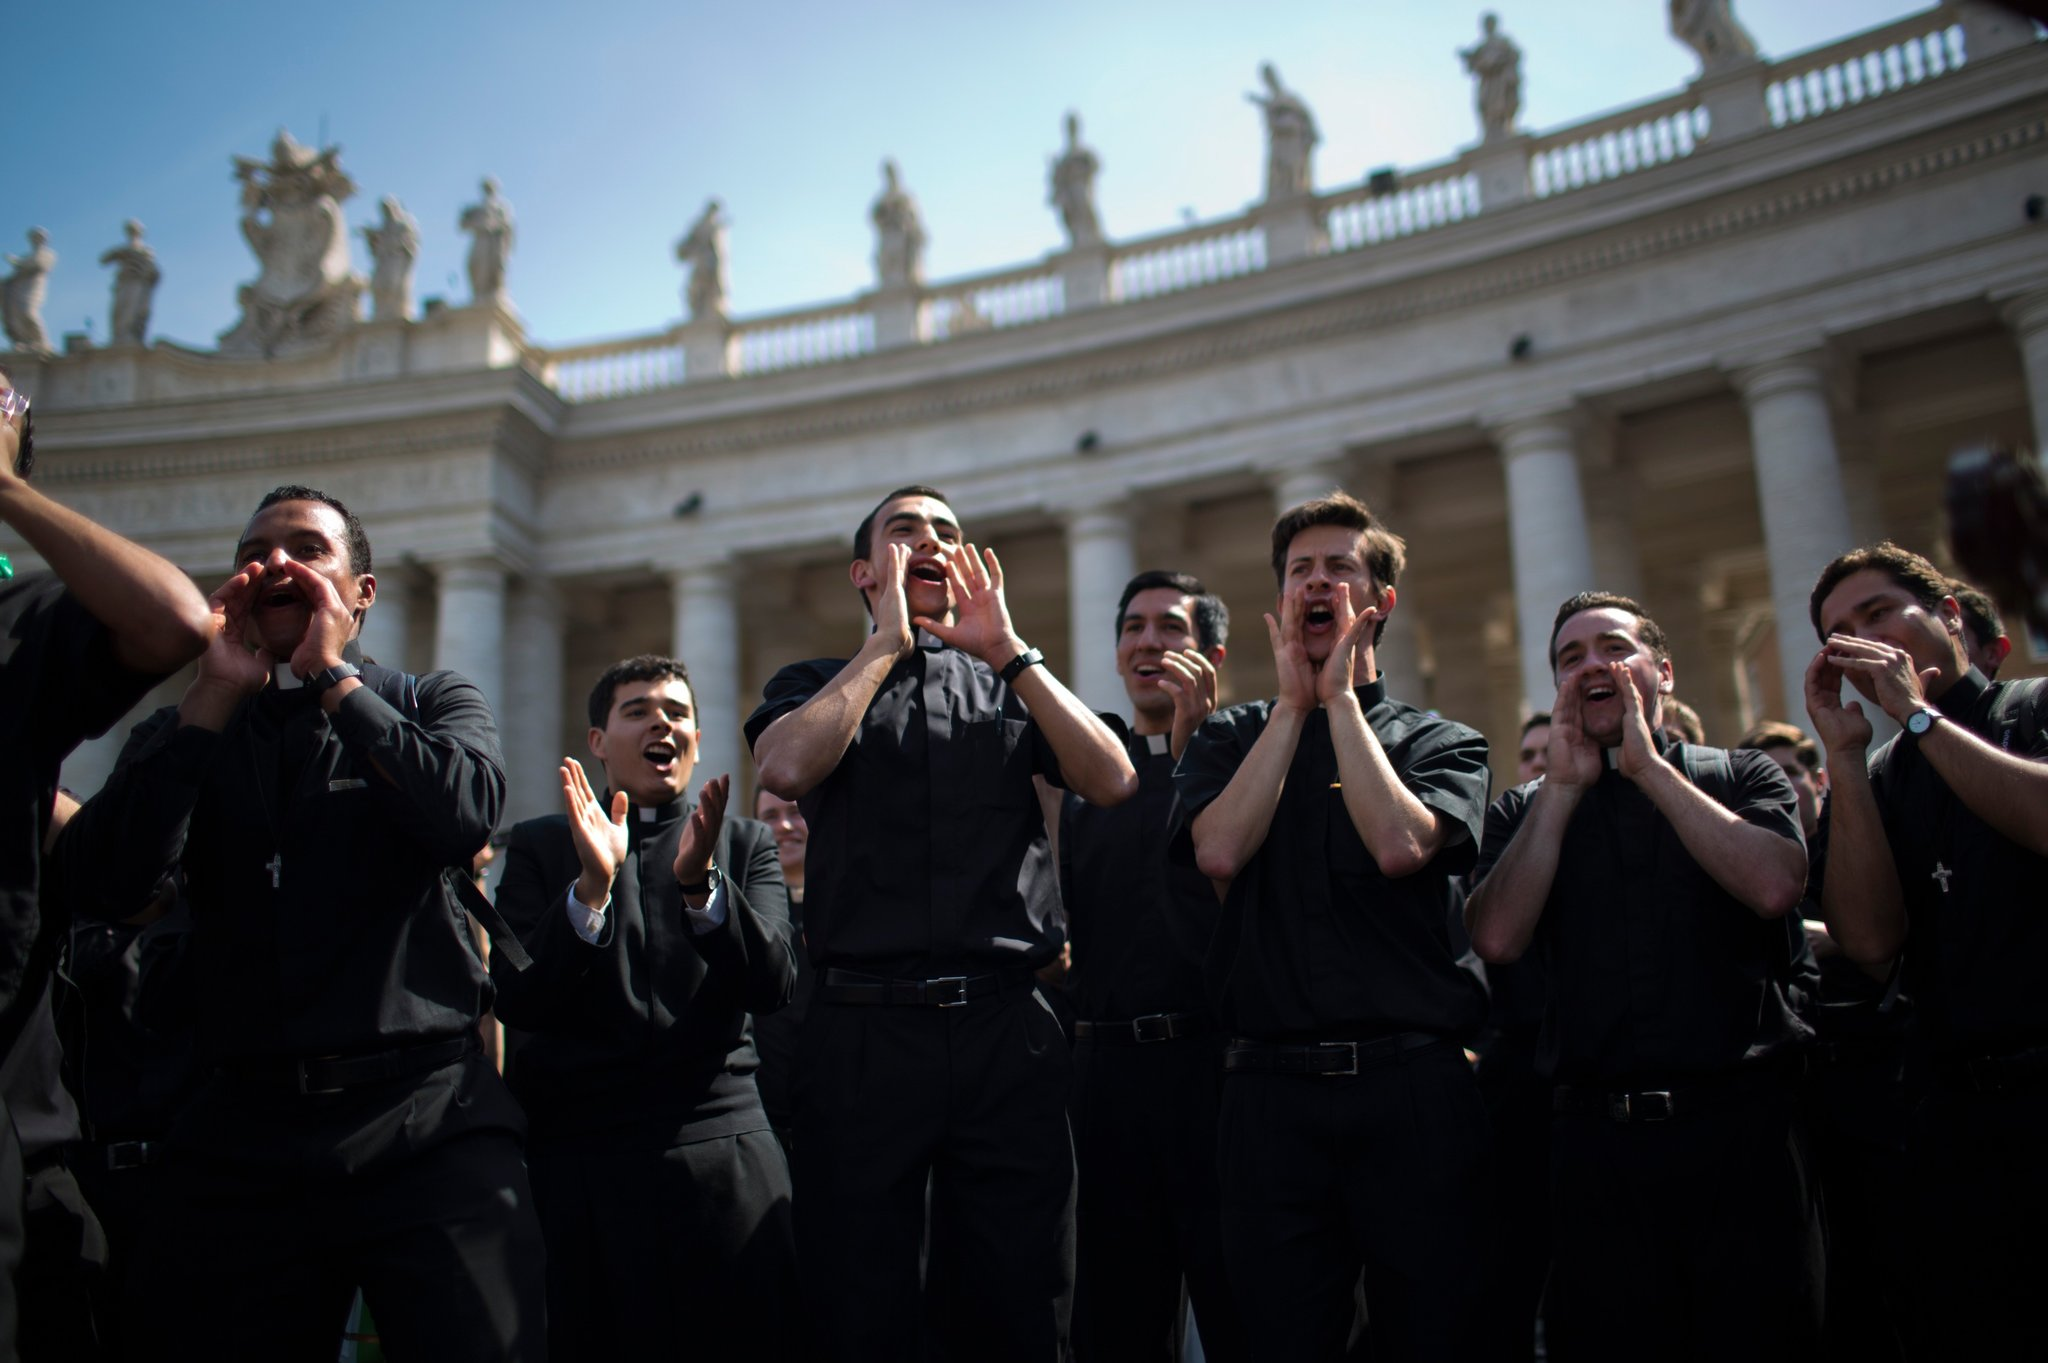 Seminarians at canonization of popes